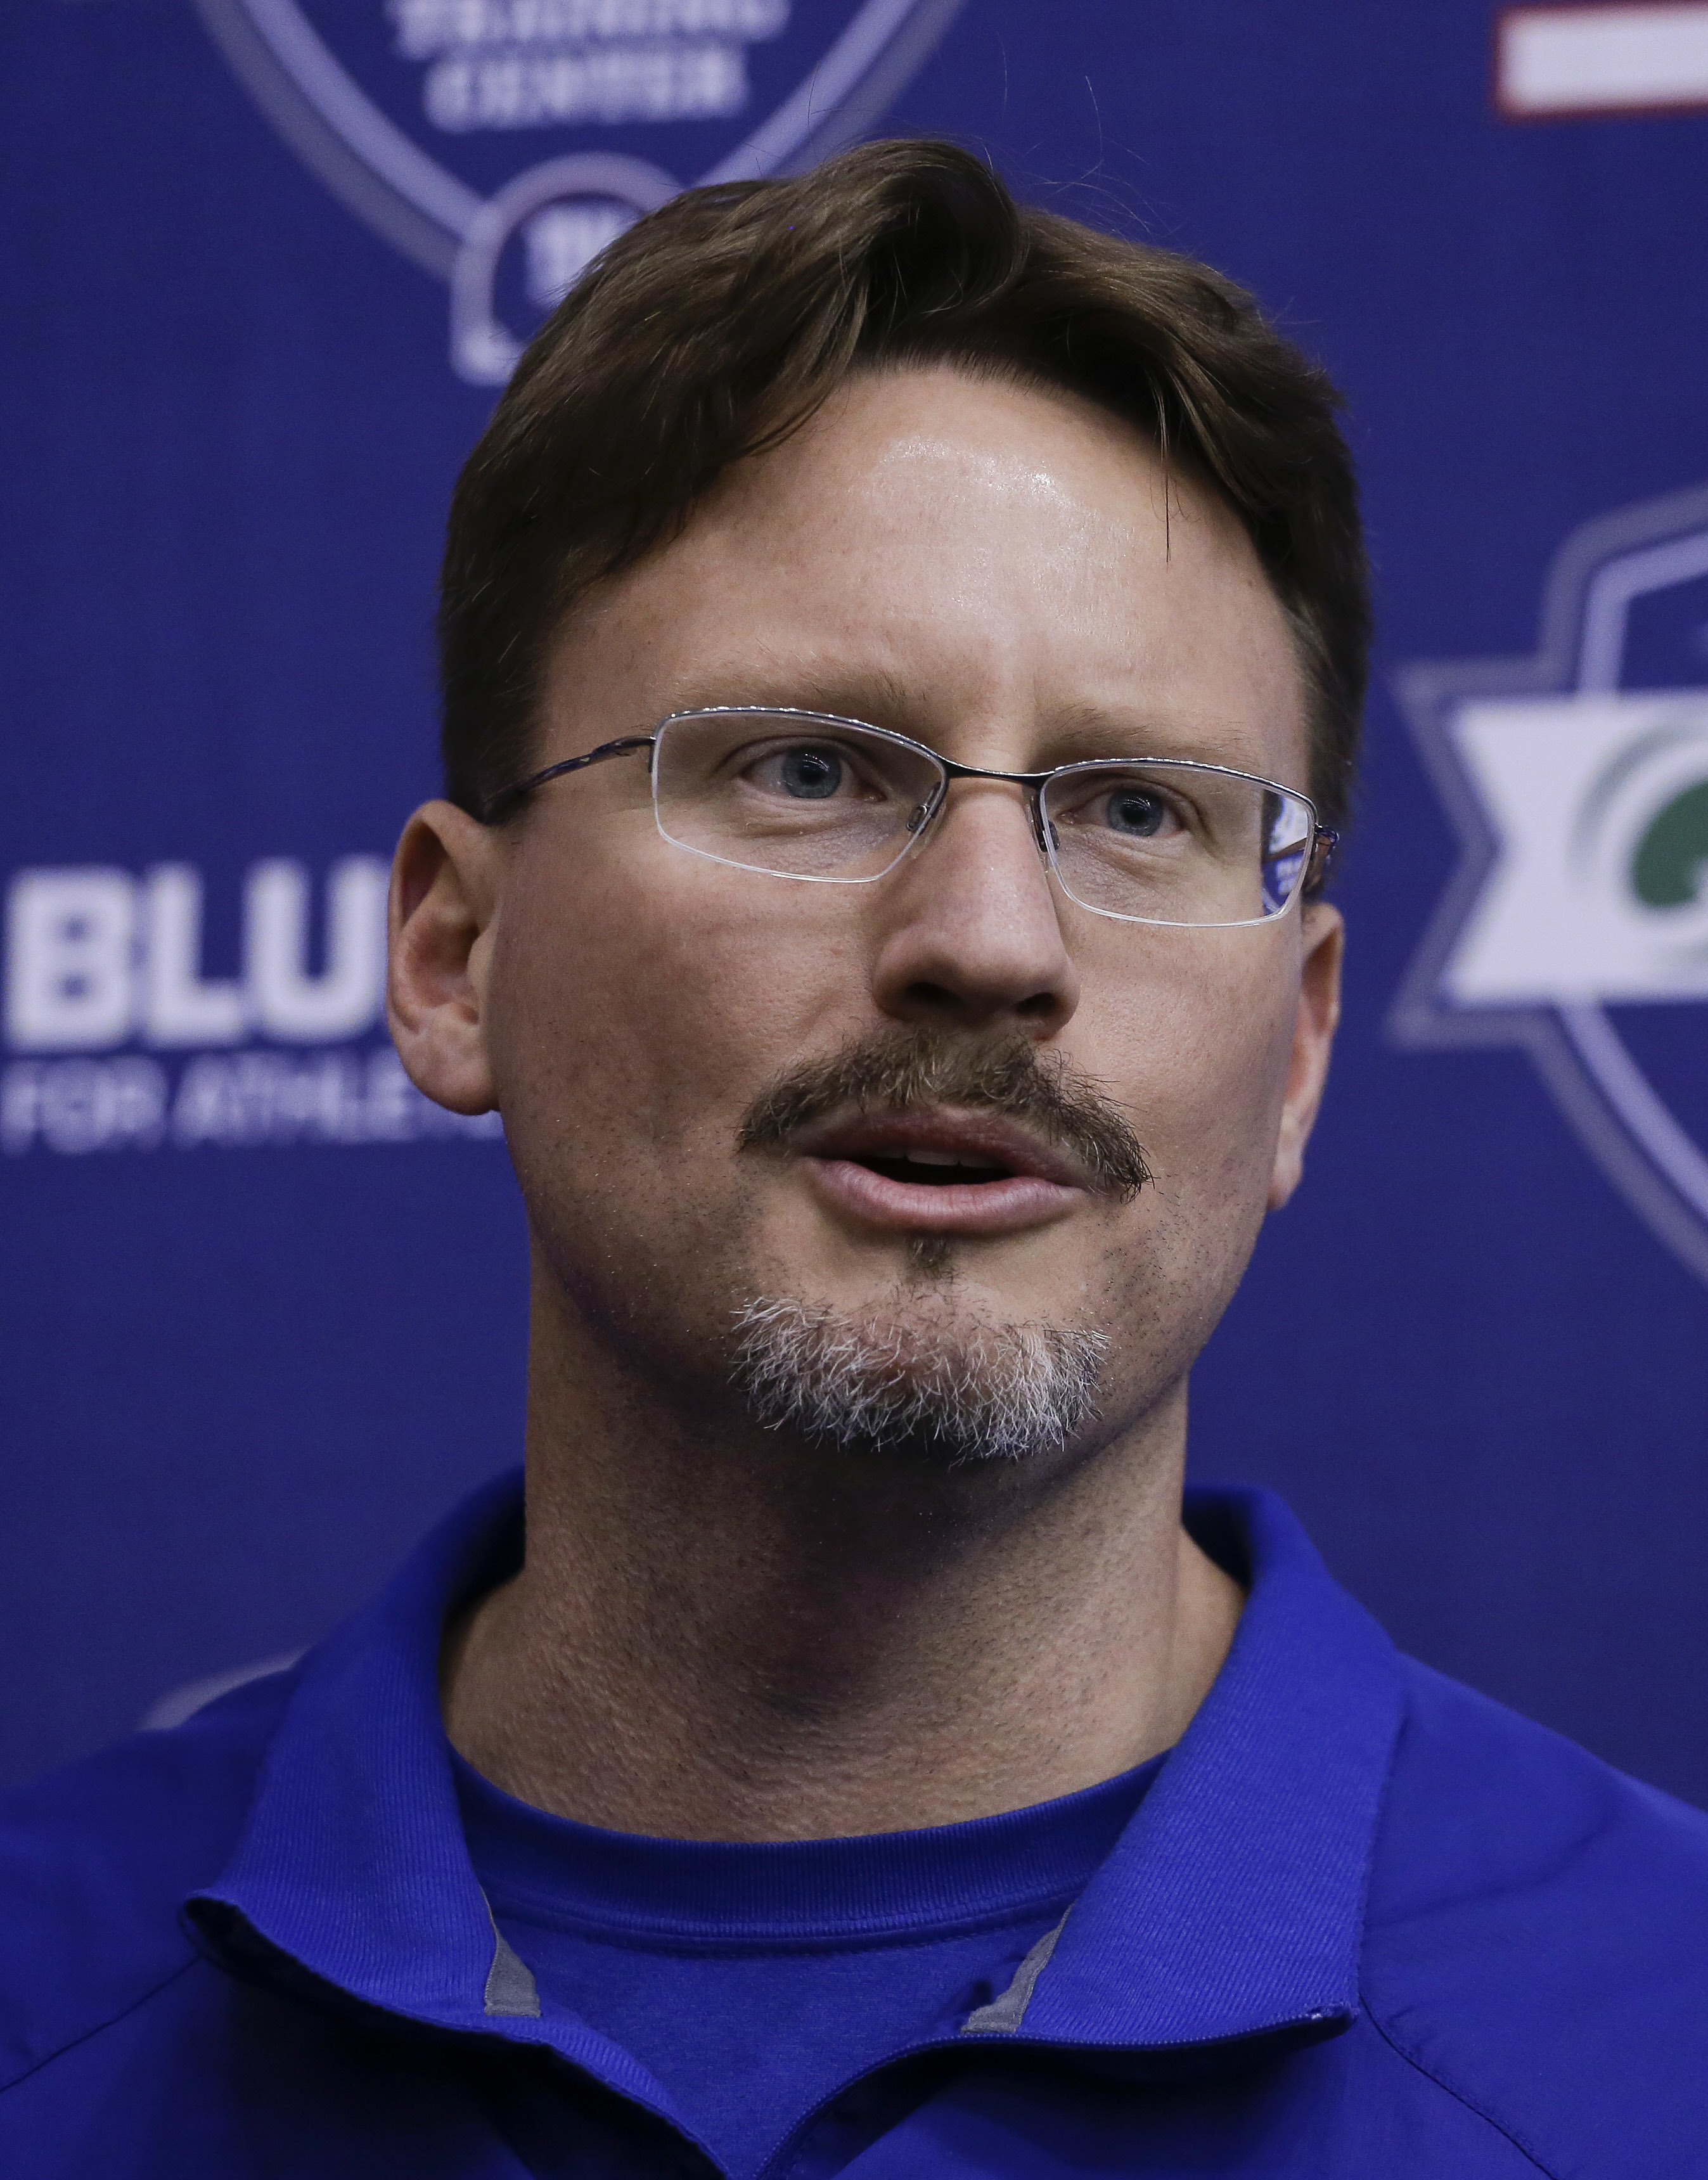 New York Giants head coach Ben McAdoo answers questions for members of the media after NFL football rookie camp, Friday, May 6, 2016, in, East Rutherford, N.J. (AP Photo/Julie Jacobson)